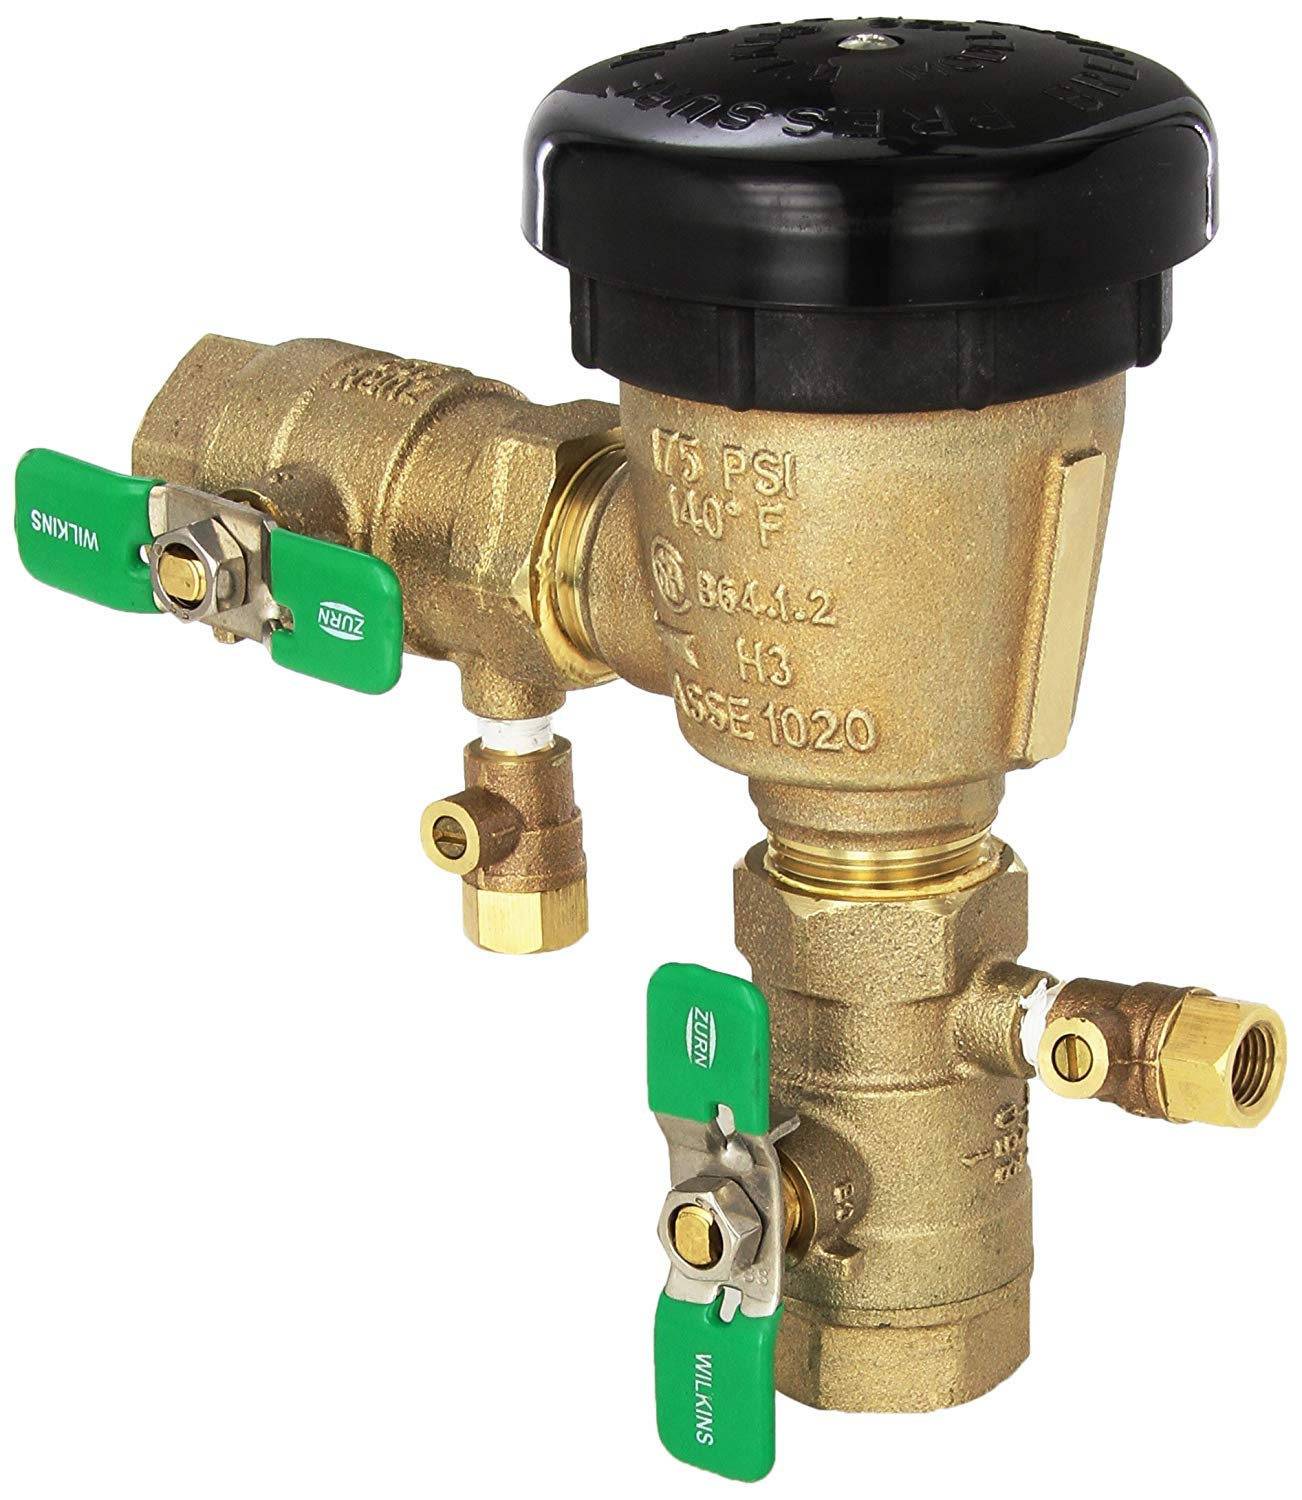 "Wilkins 3/4"" 420 Freeze Resistant PVB Pressure Vacuum Breaker Assembly Backflow Preventer 34-420 with Integral Anti-Freeze Relief Valve"